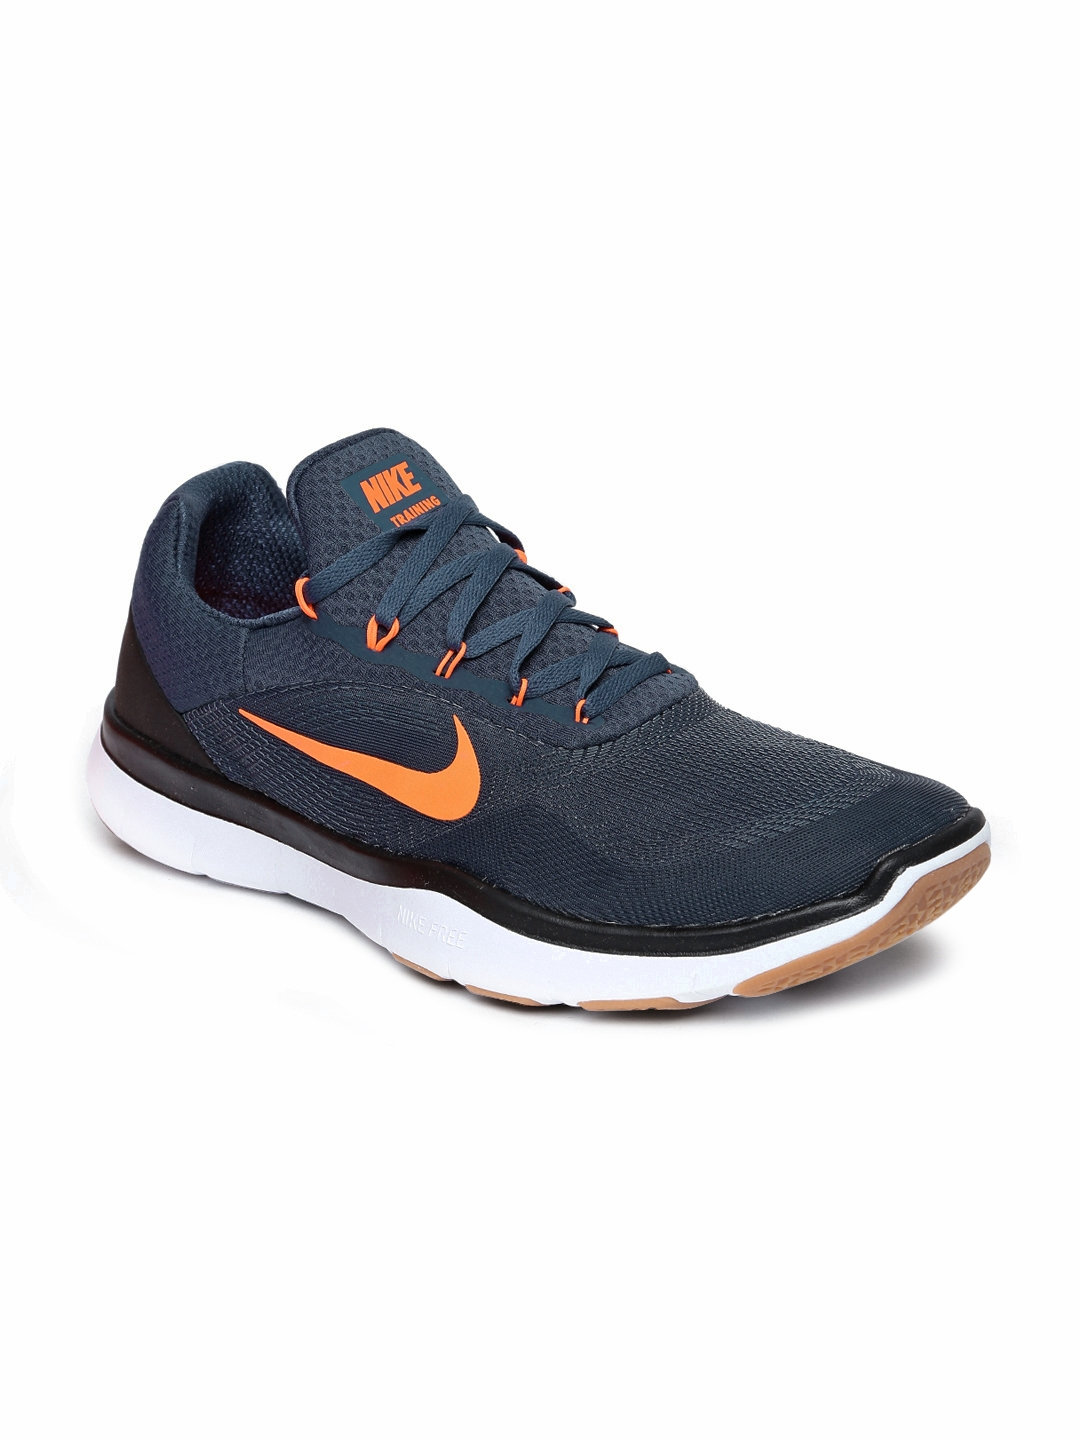 a280dd6d0319c Buy Nike Men Navy Blue FREE TRAINER V7 Training Shoes - Sports Shoes ...